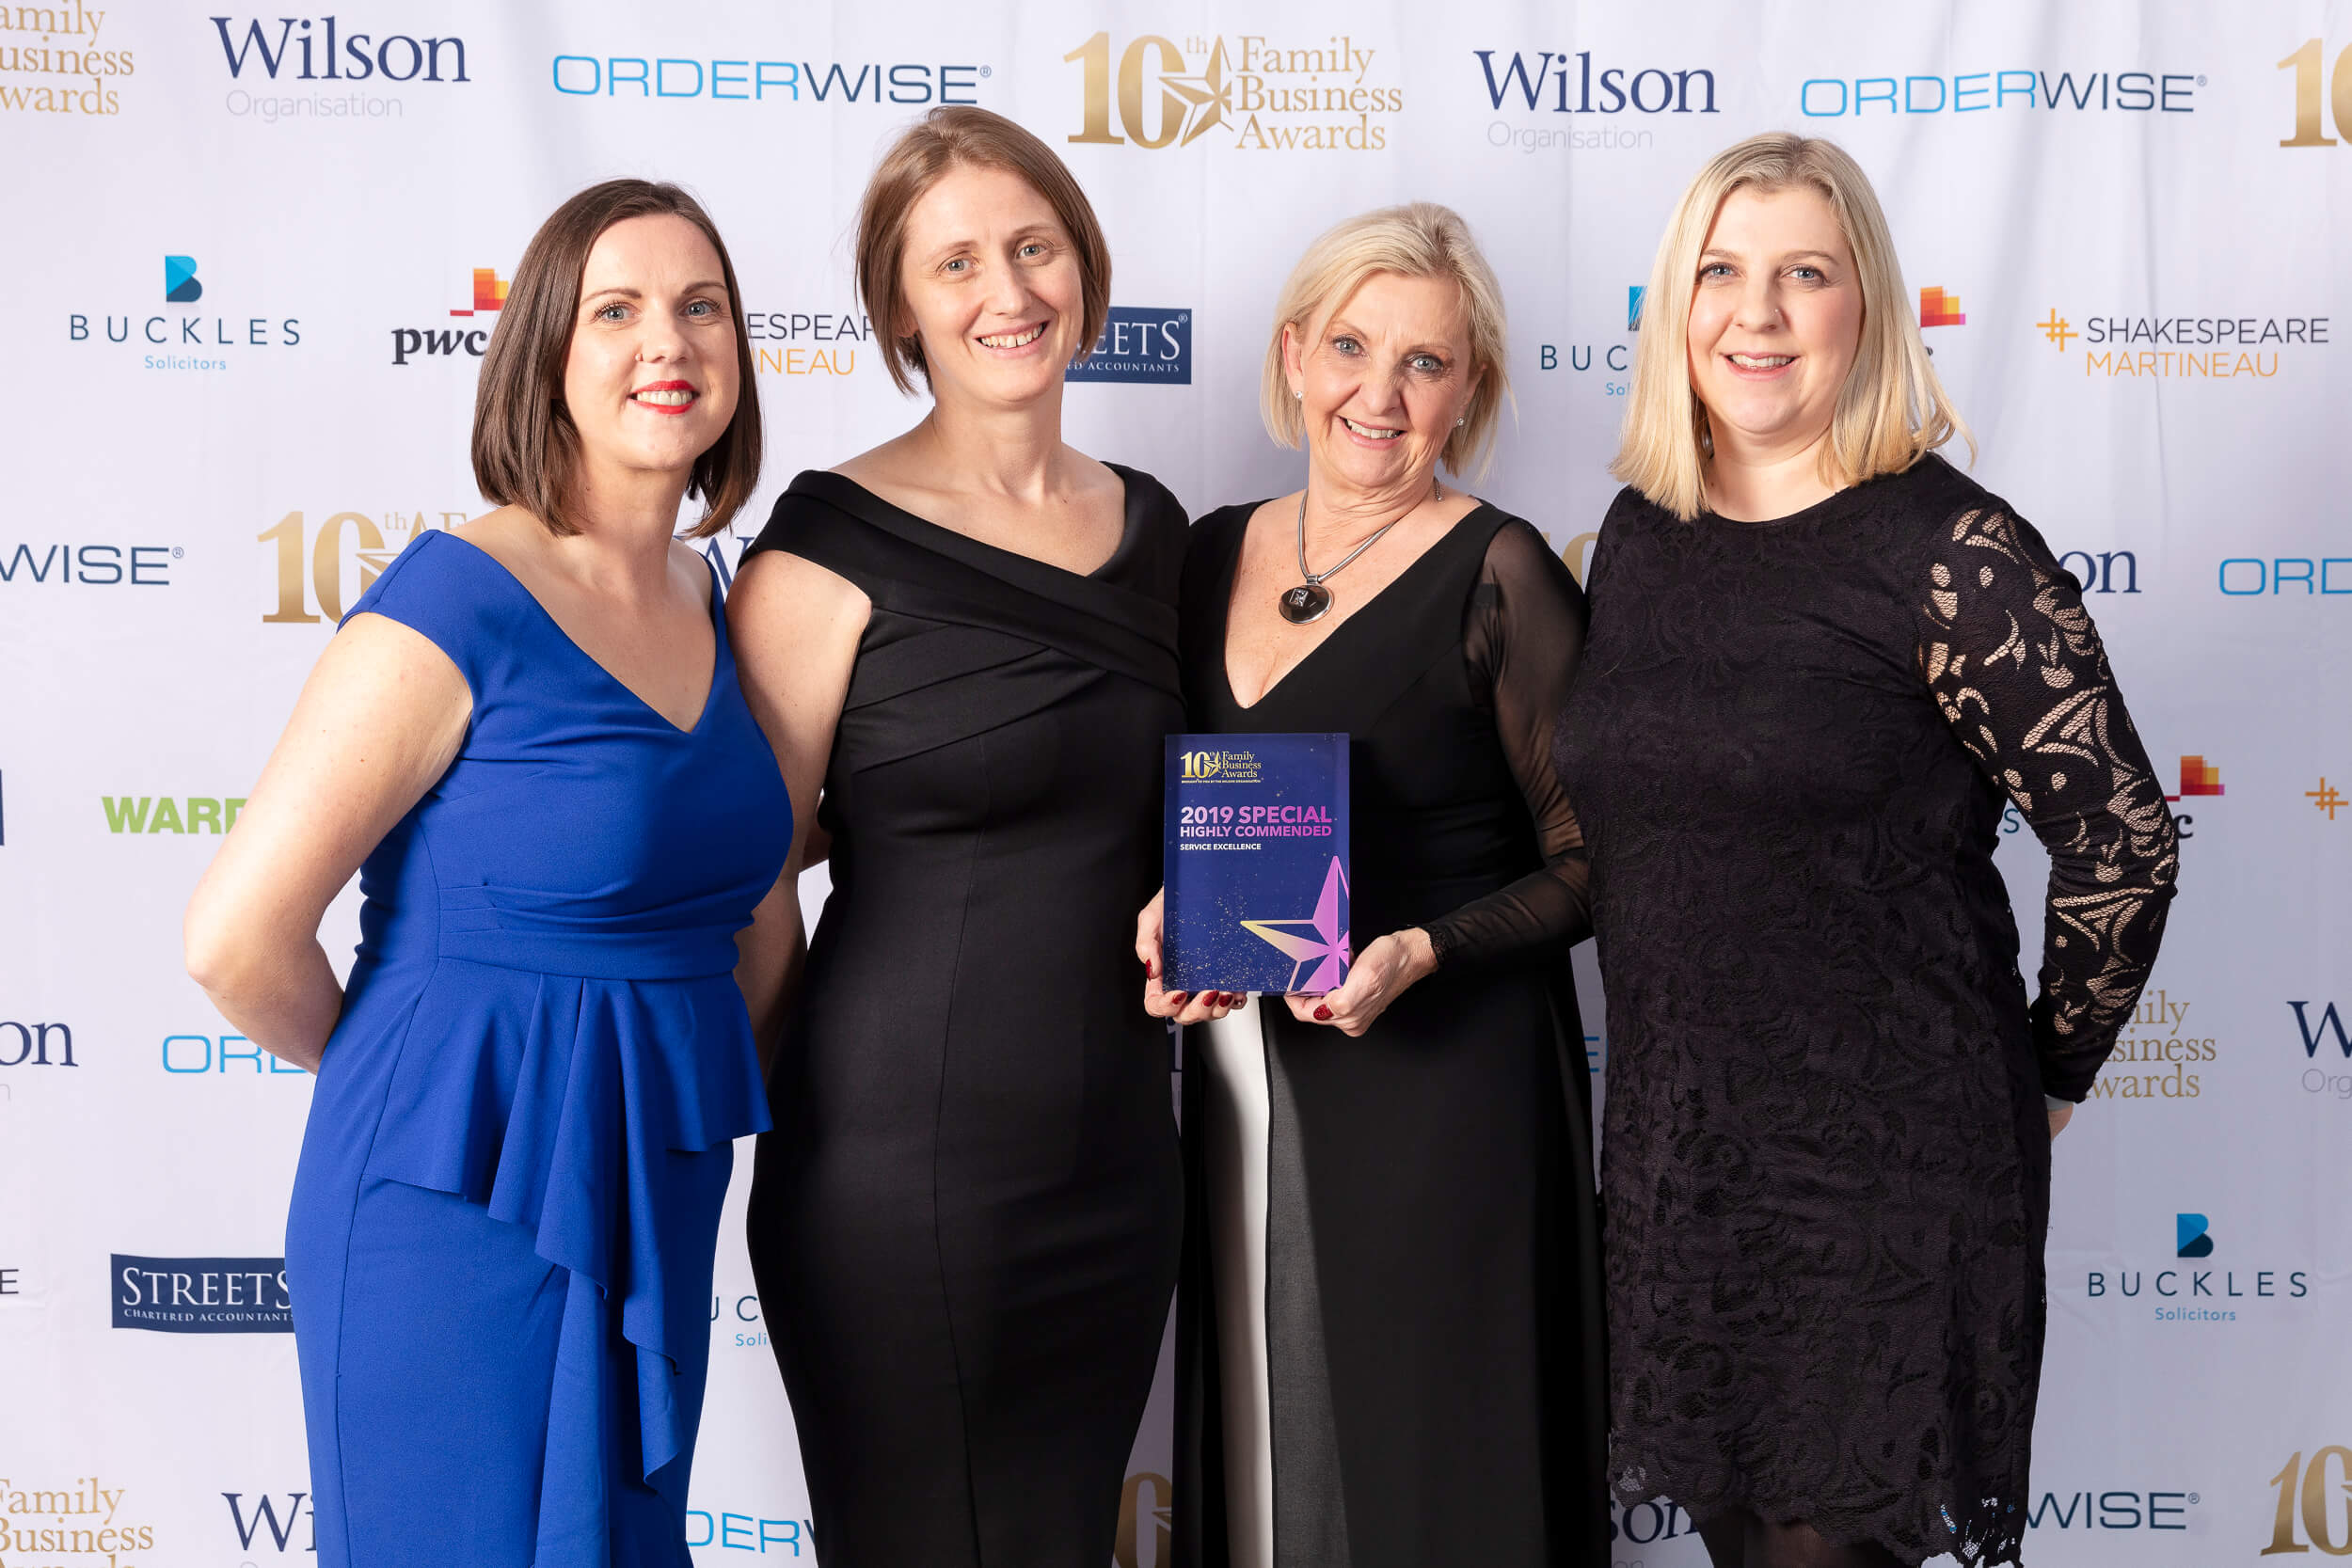 Image for Absolute Works receives 'Special Highly Commended' for Service Excellence in the prestigious Midlands Family Business Awards